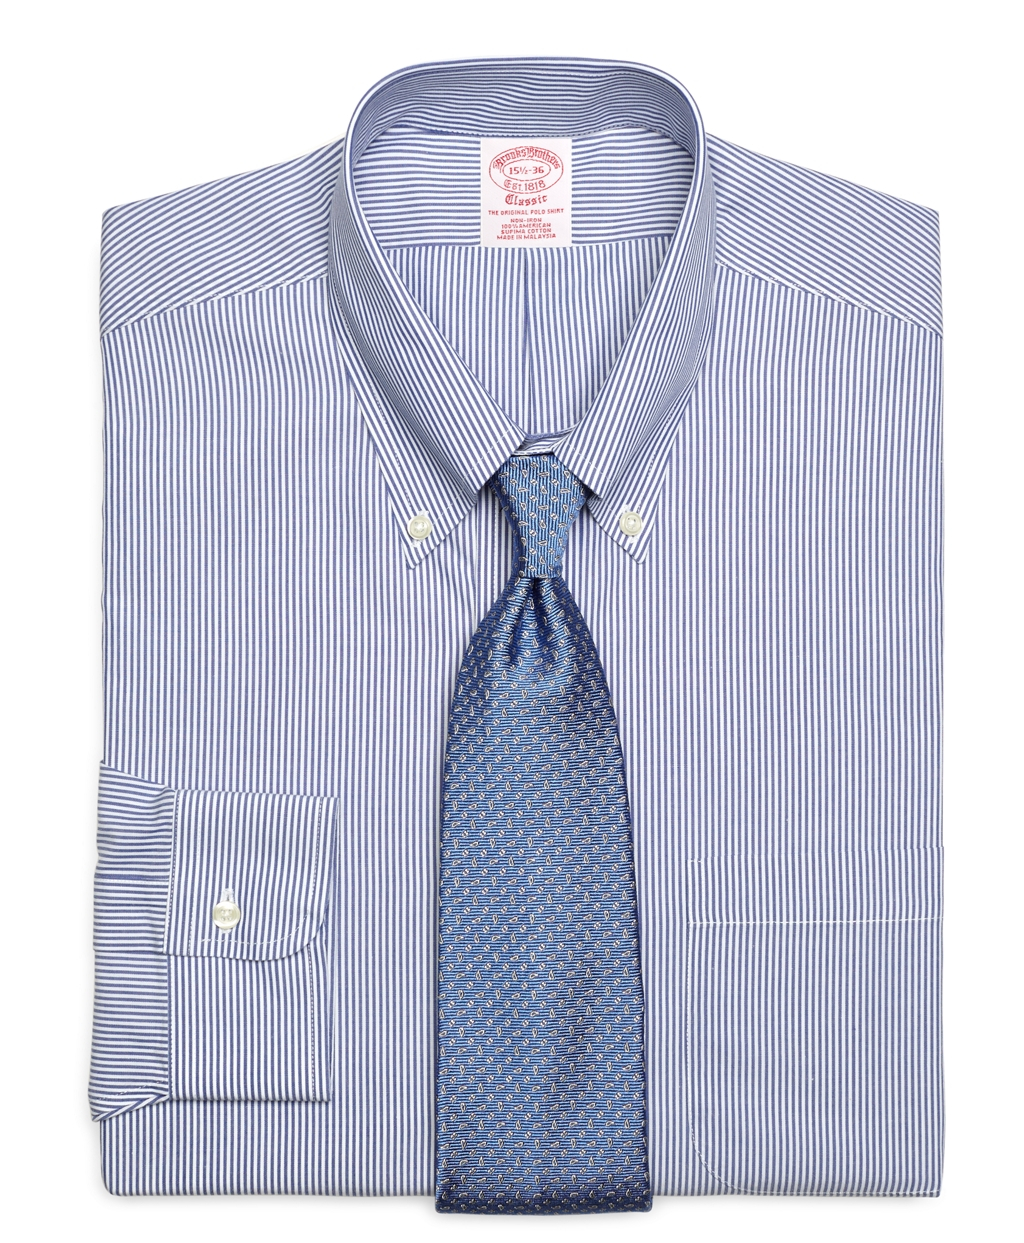 Brooks brothers non iron slim fit candy stripe dress shirt for Brooks brothers non iron shirts review